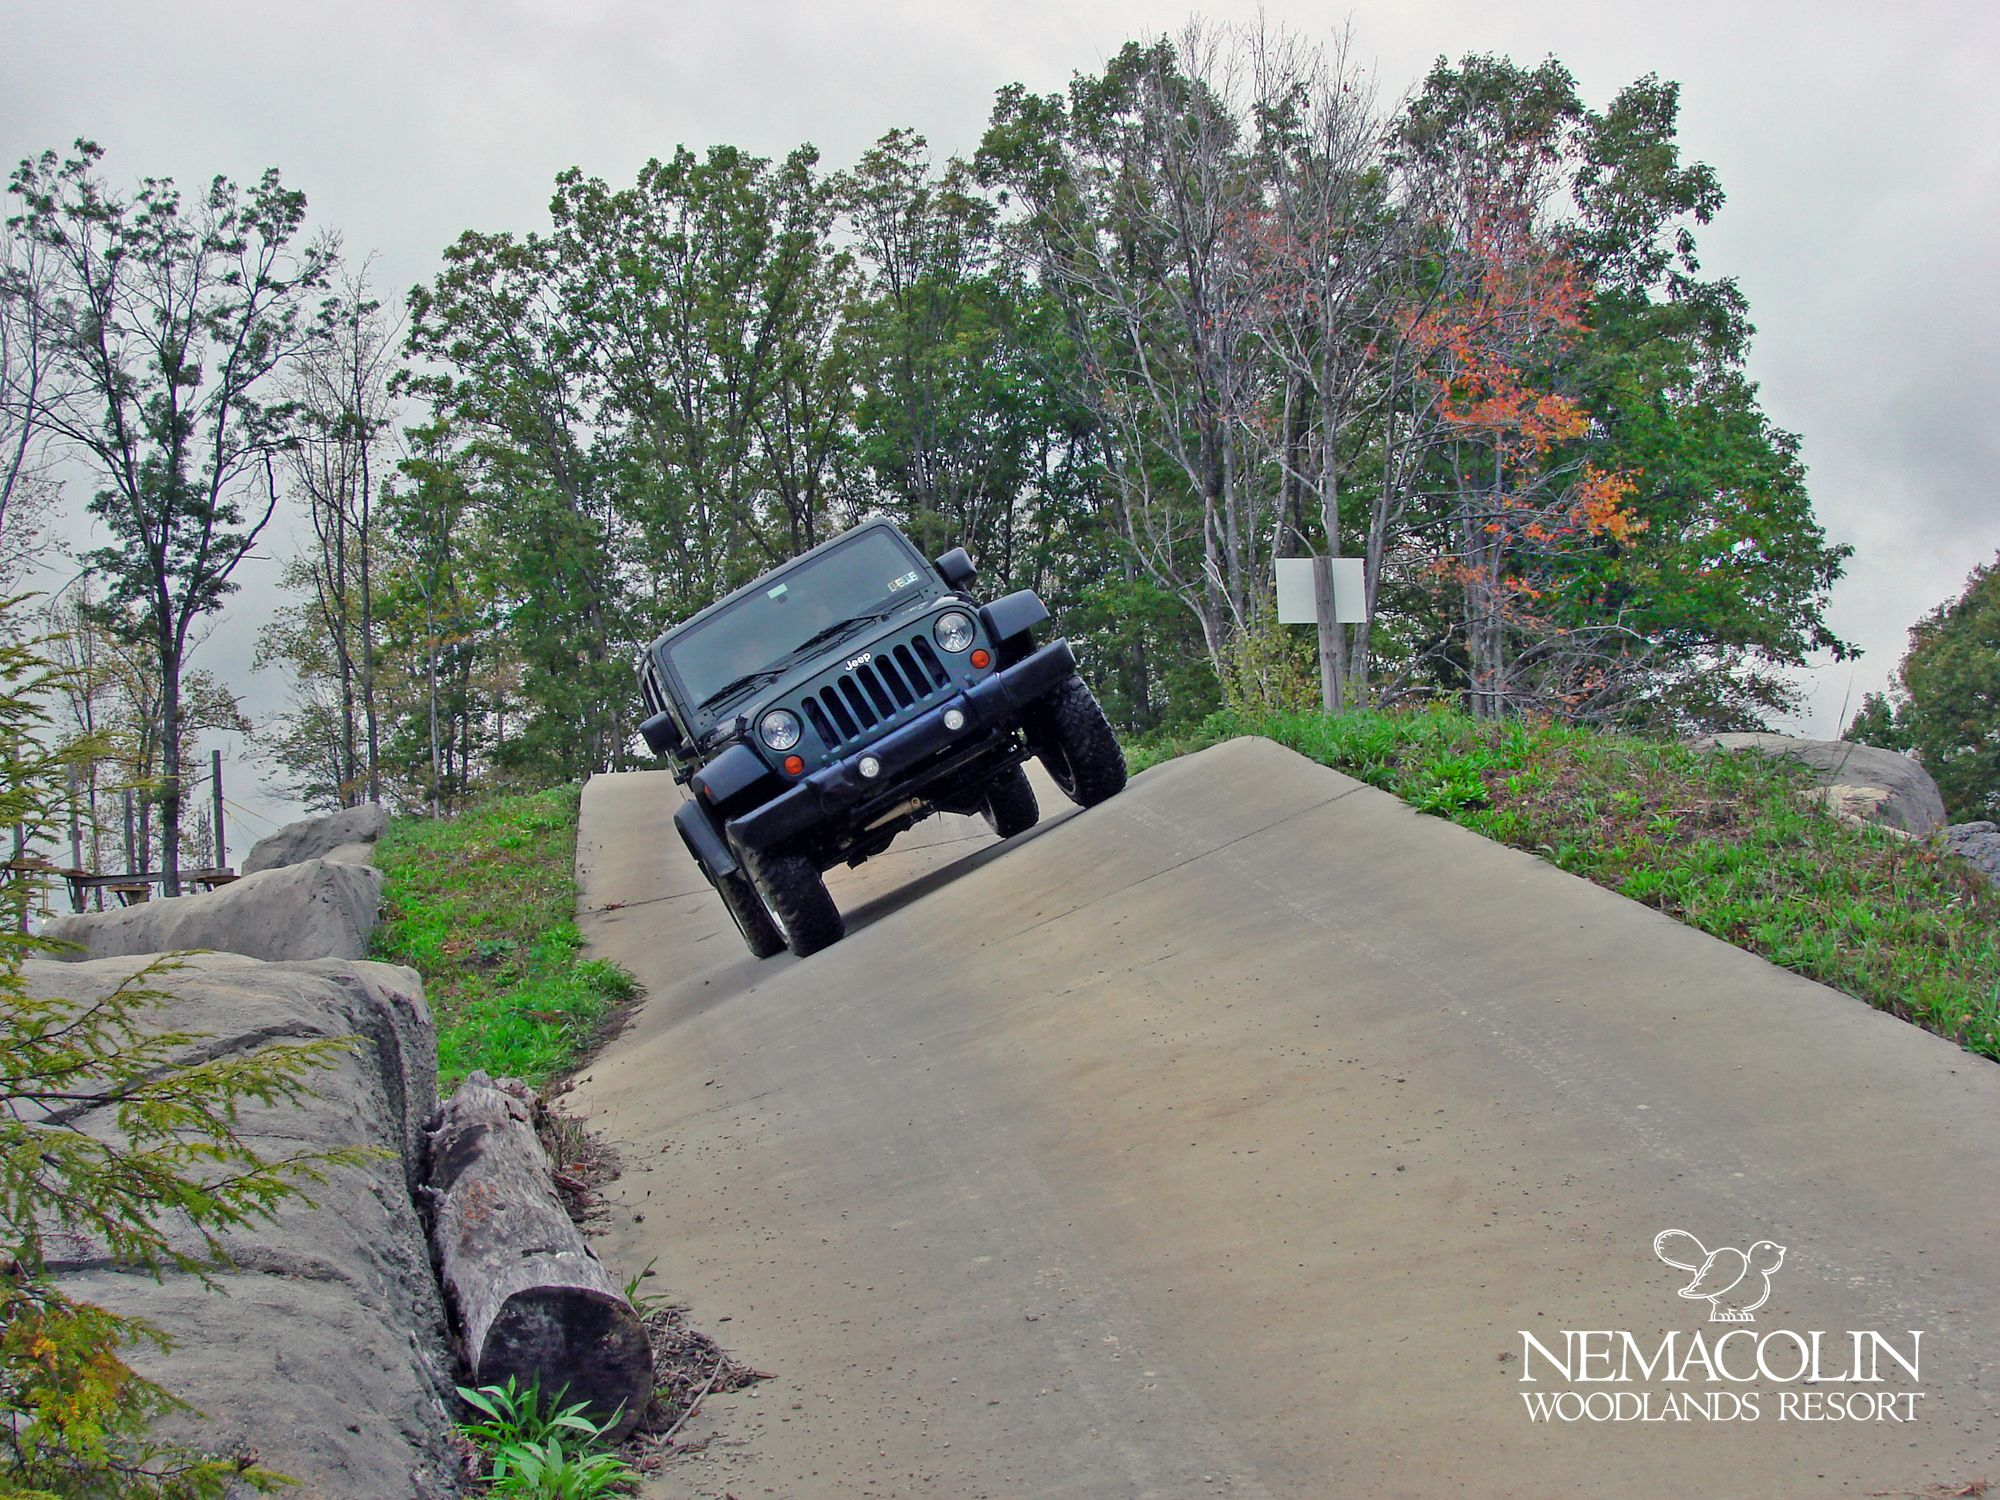 Nemacolin S Jeep Off Road Driving Academy Offers 20 Miles Of